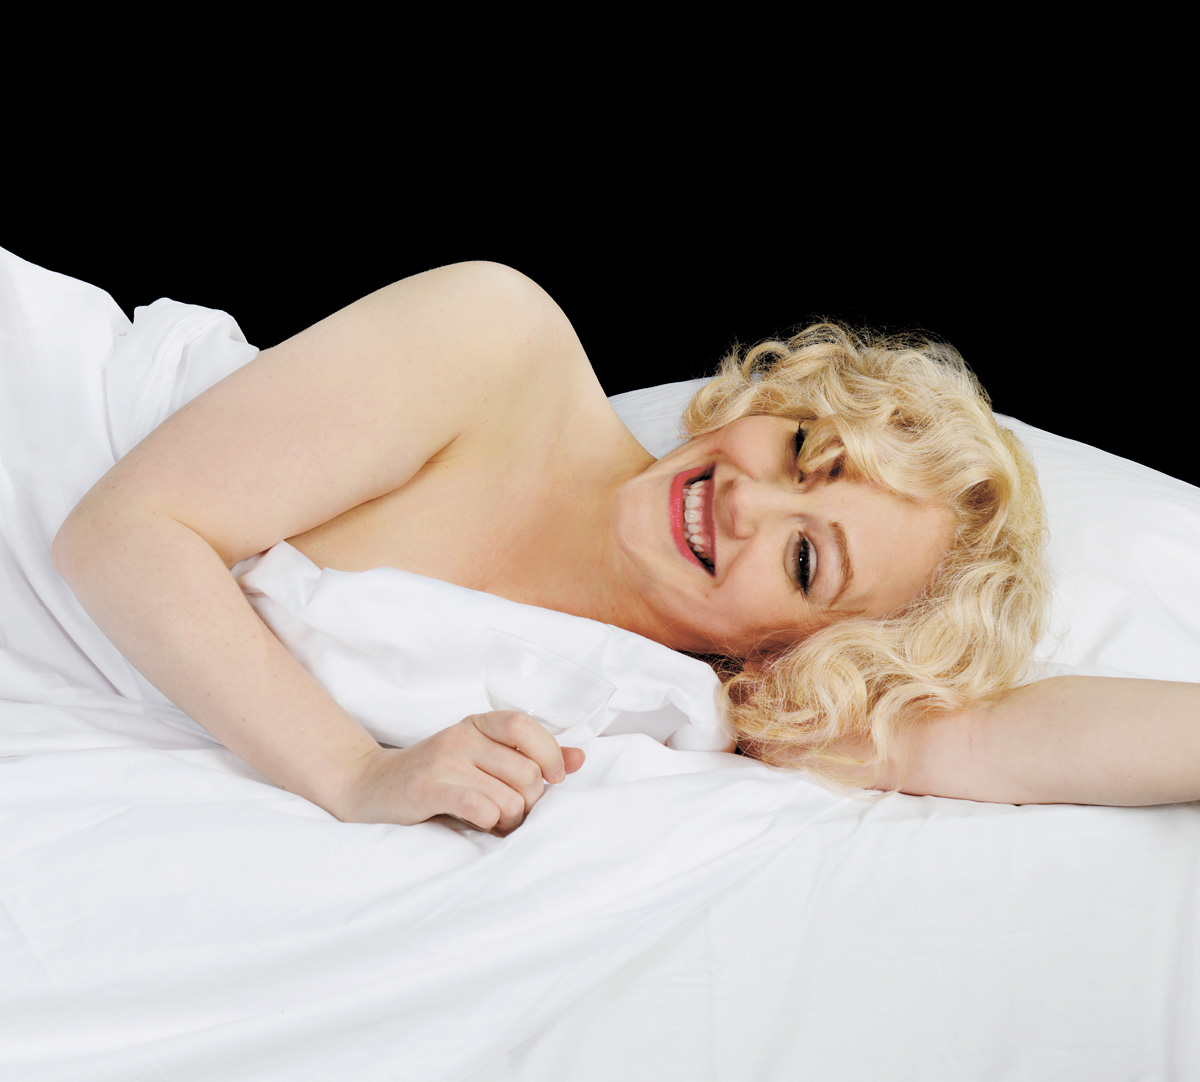 Lizzie Wort is playing Marilyn Monroe